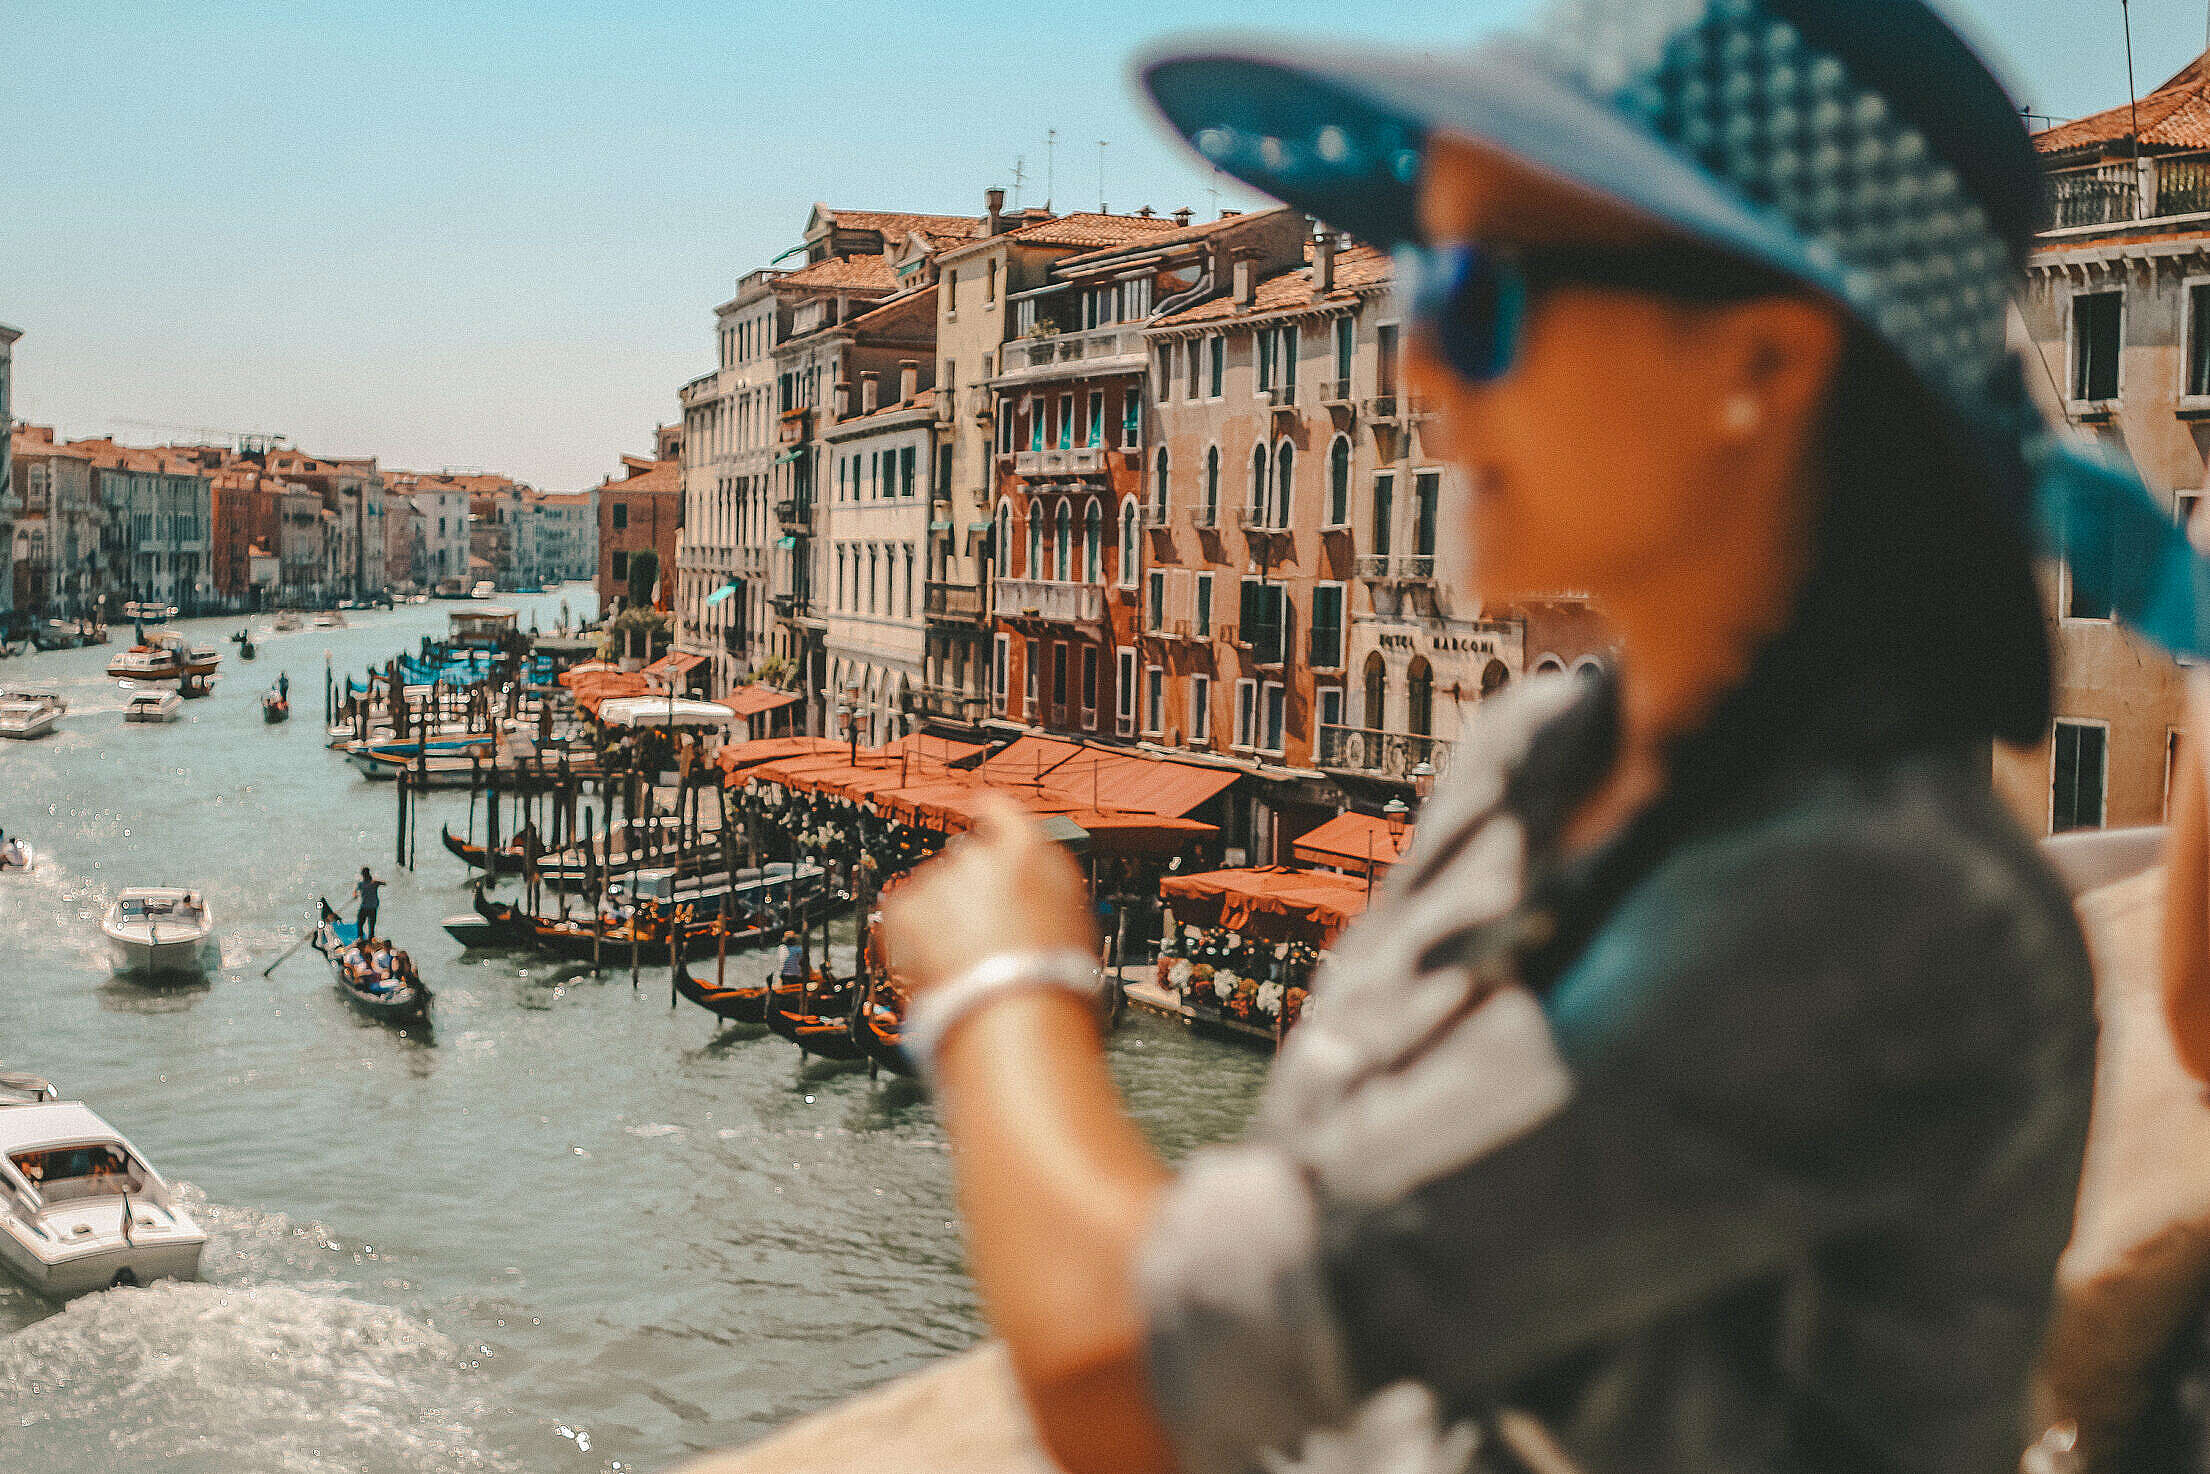 Woman In Venice, Italy Vintage Free Stock Photo